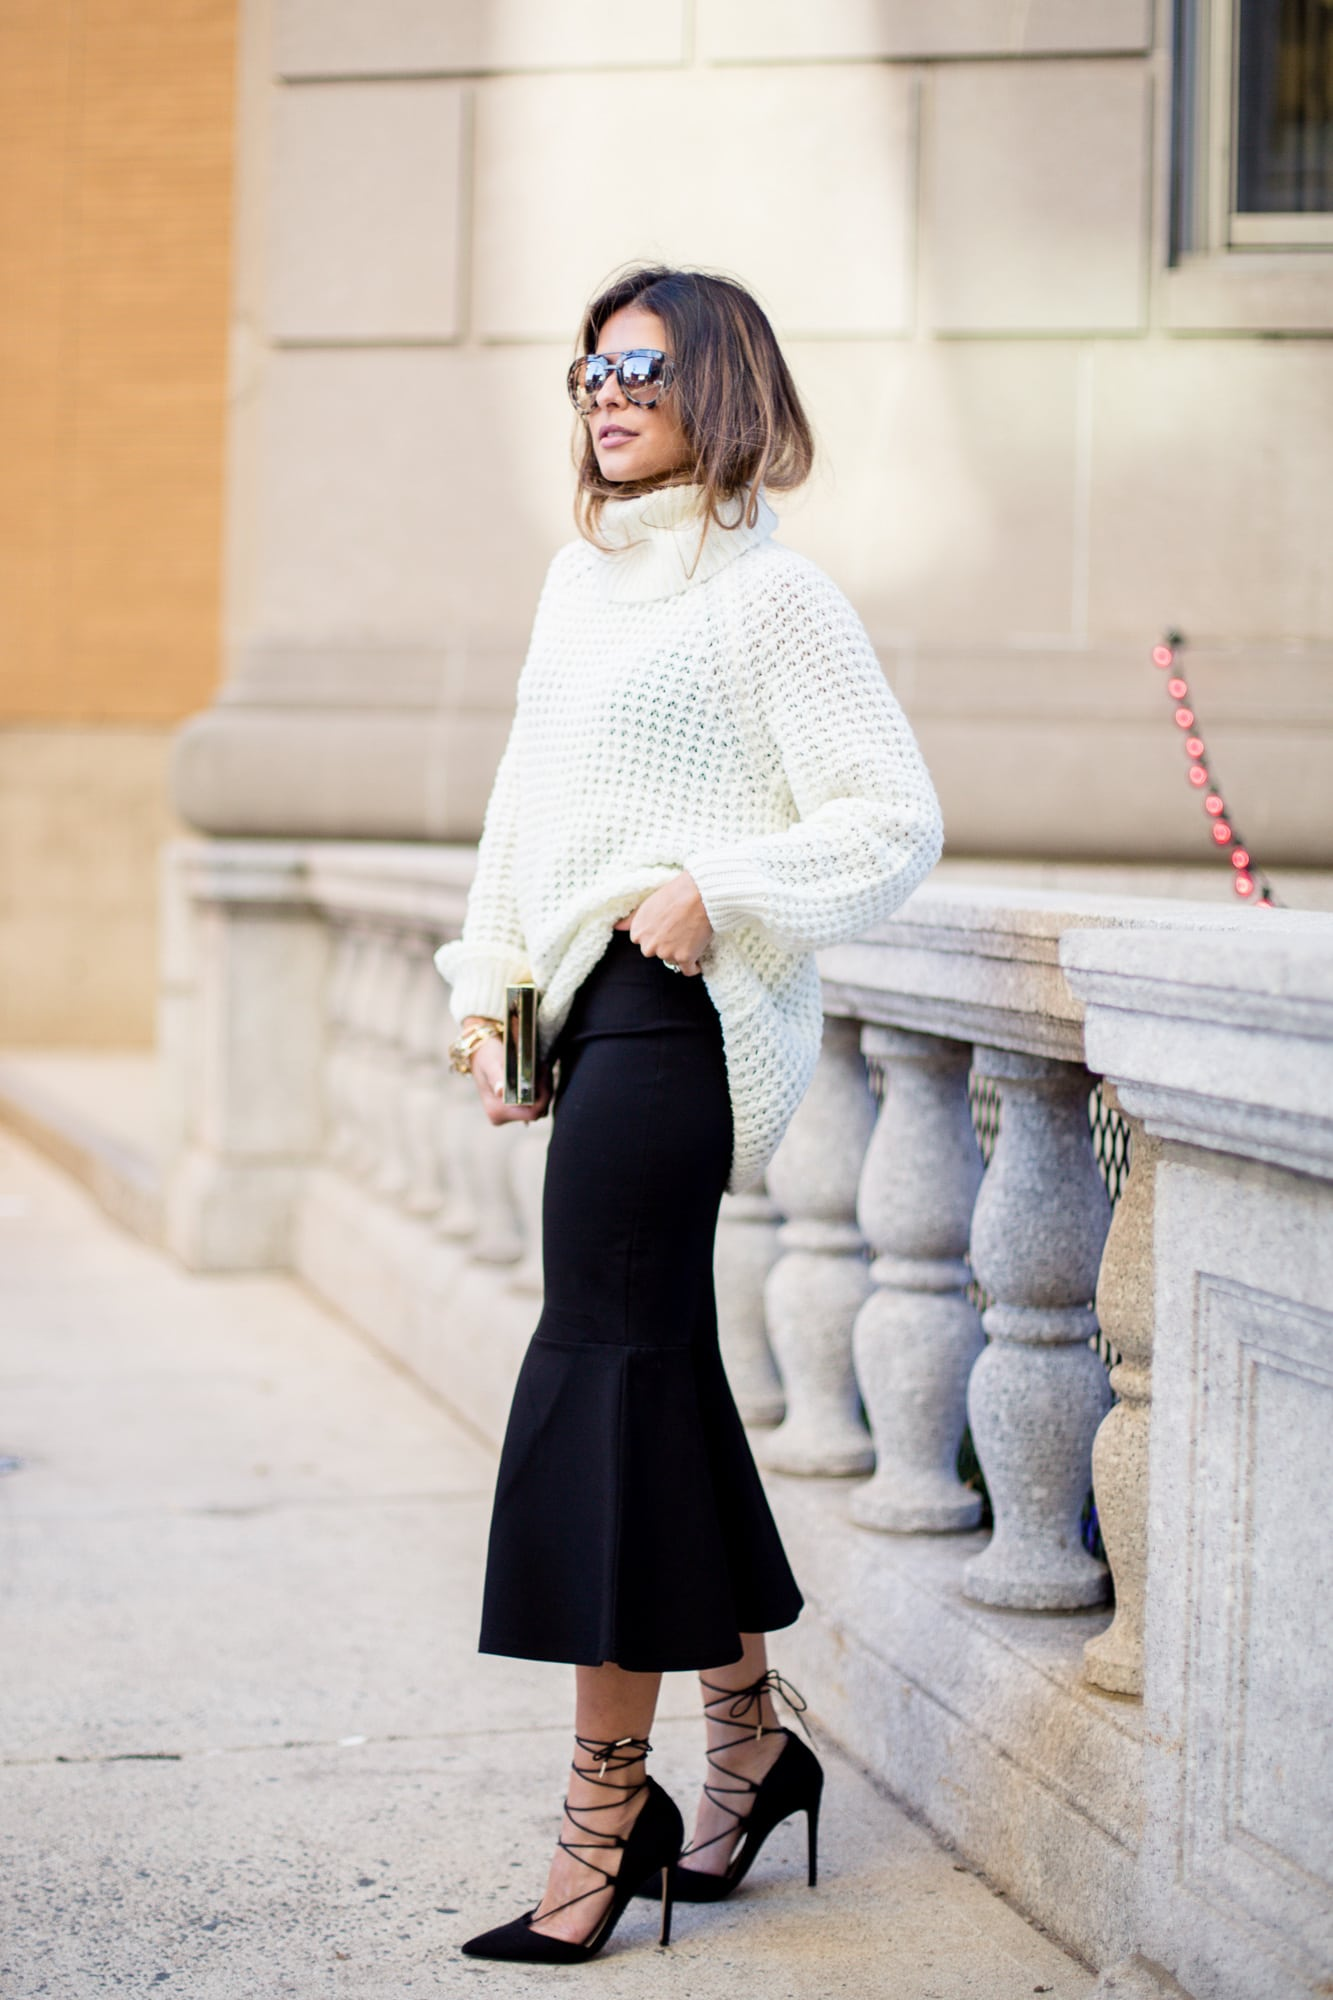 Fall Fashion- Fit and Flare skirt, turtleneck sweater, lace up pointed toe pumps, Pam Hetlinger | The Girl From Panama